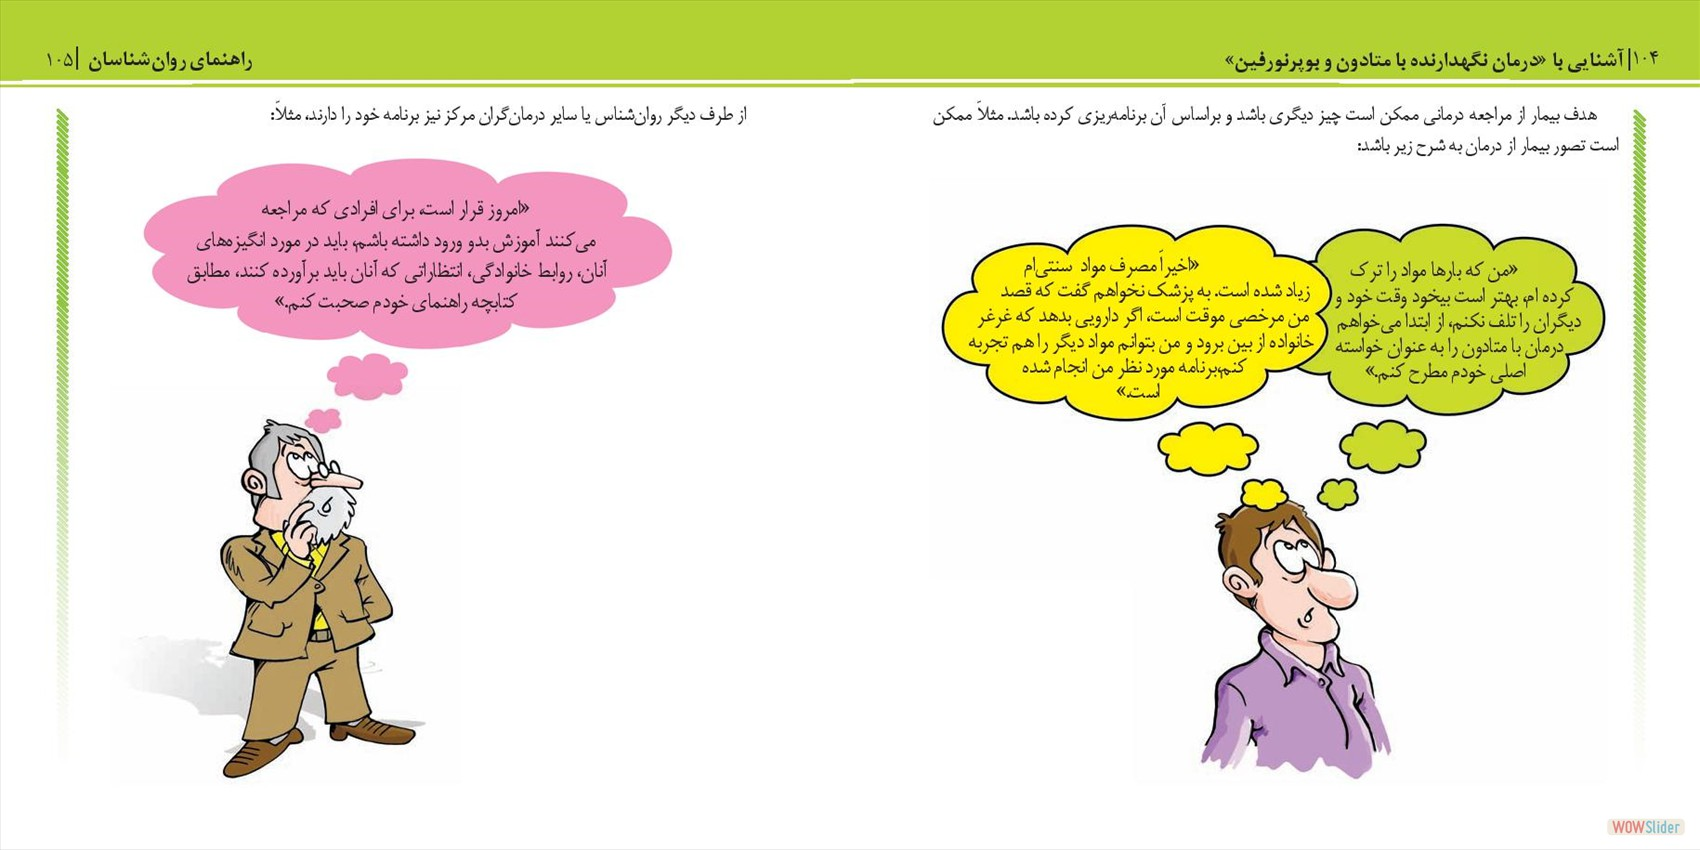 Psychologist_Booklet_farsi_low-page-059